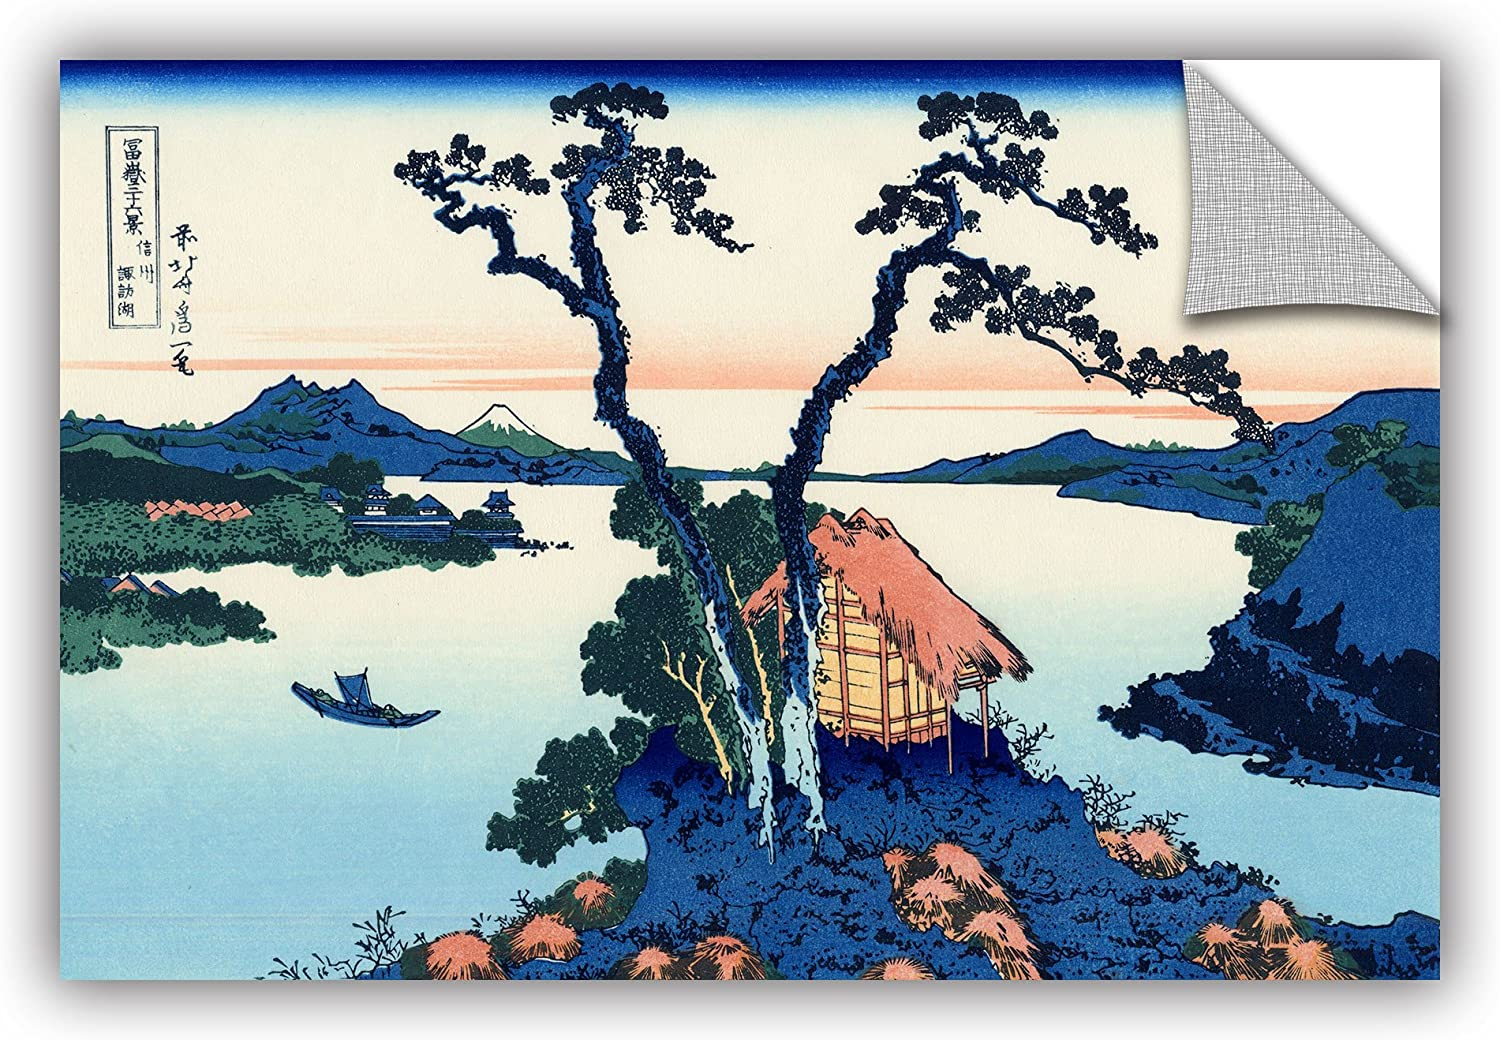 ArtWall Katsushika Hokusai's Lake Suwa in The Shinano Province  Removable Wall Art, 12-Inchx18-Inch